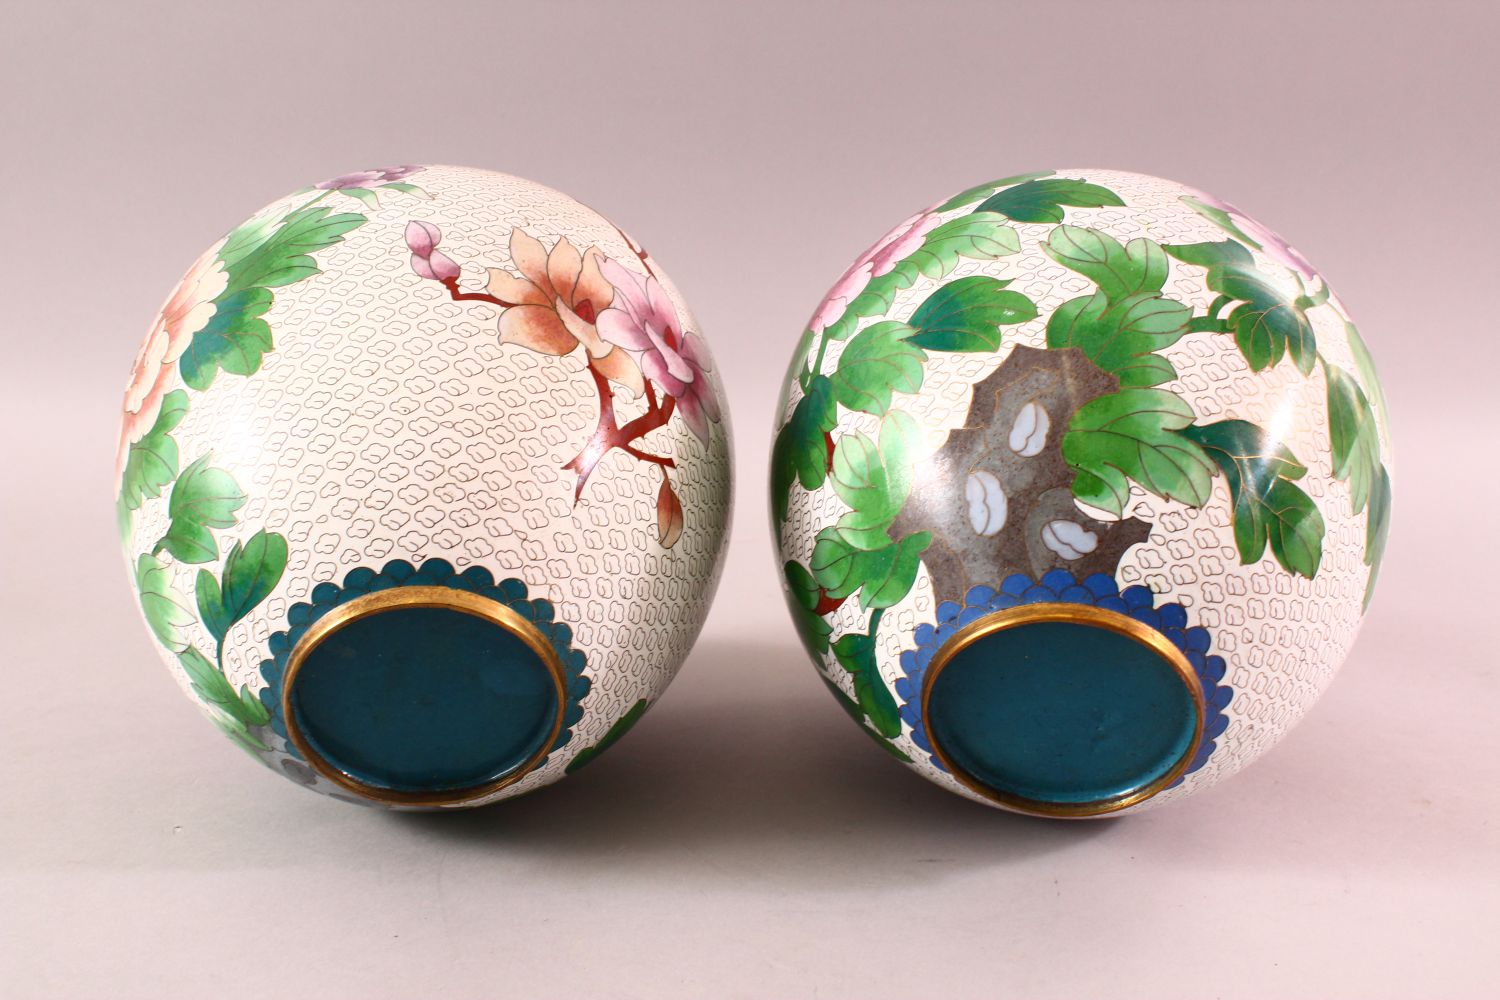 A PAIR OF CHINESE CLOISONNE GINGER JARS & COVERS, each with a white ground and floral decoration, - Image 7 of 7